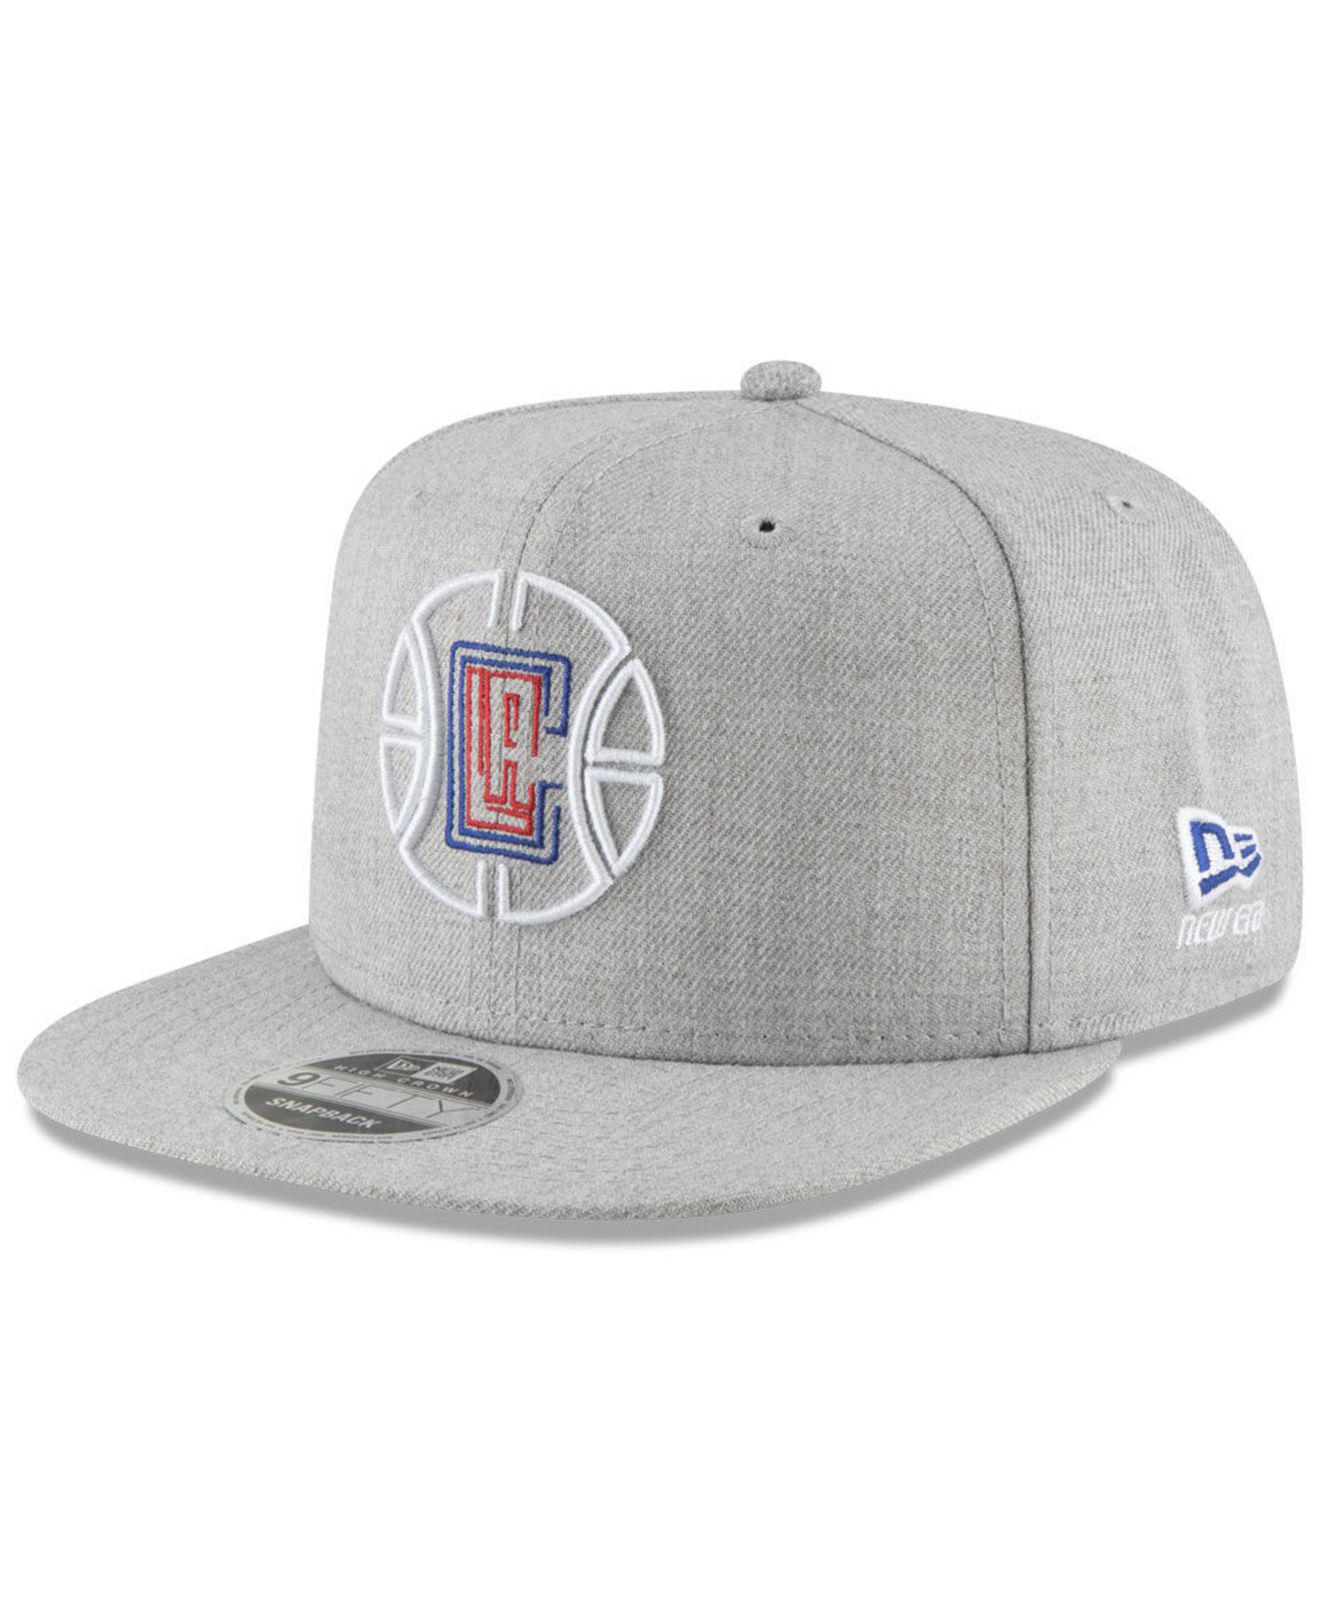 2f914a1ace6 Lyst - Ktz Los Angeles Clippers Logo Trace 9fifty Snapback Cap in ...